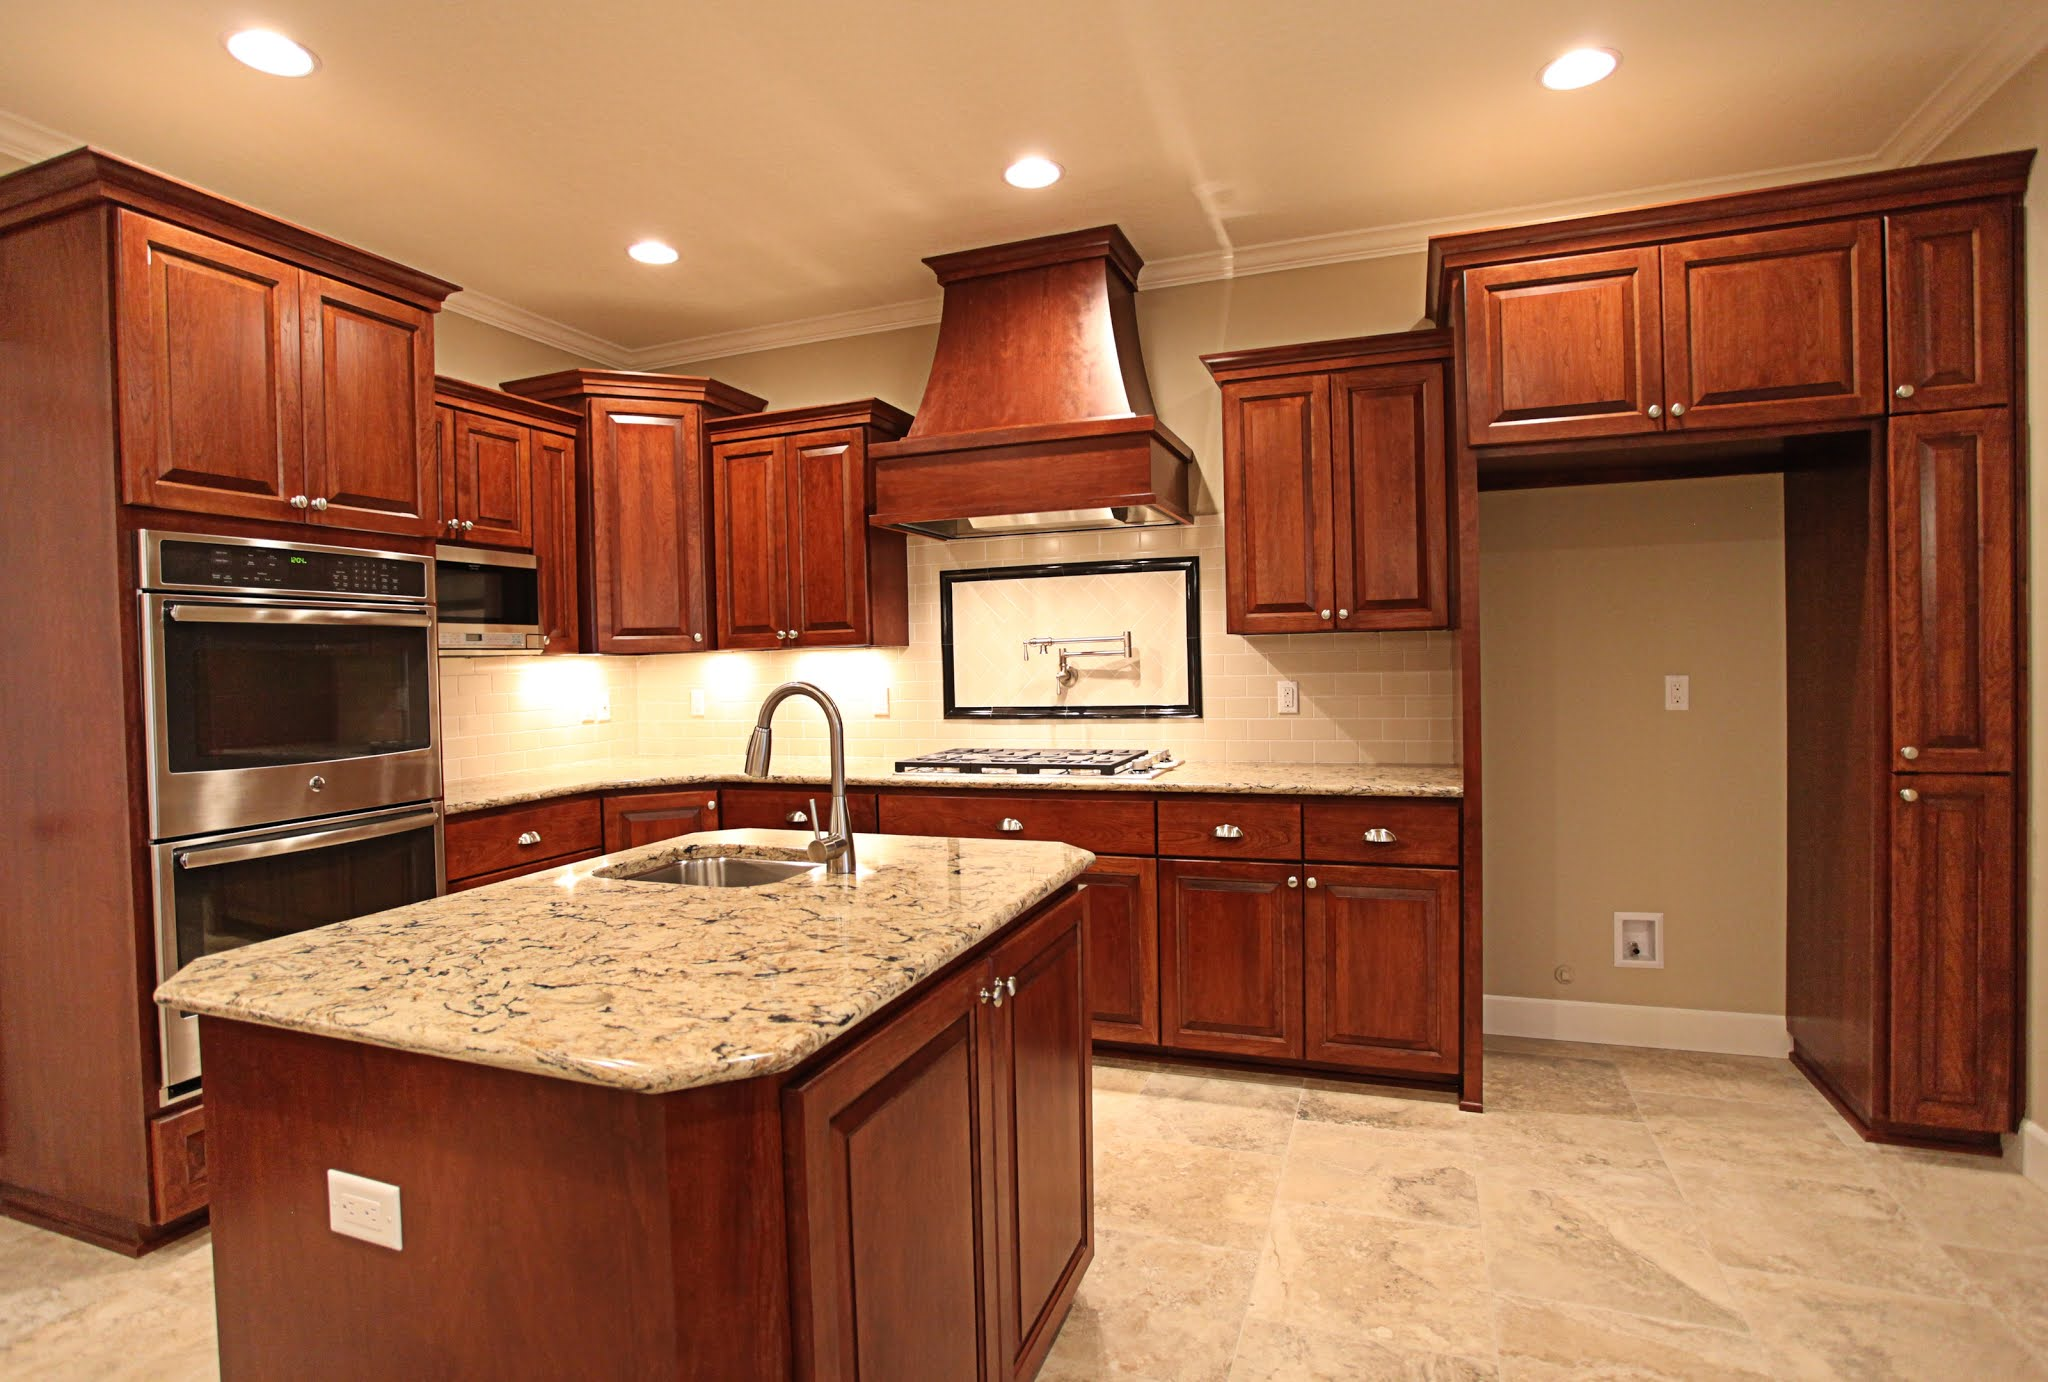 What Are the Key Factors to Take Care of While Buying Kitchen Cabinets?